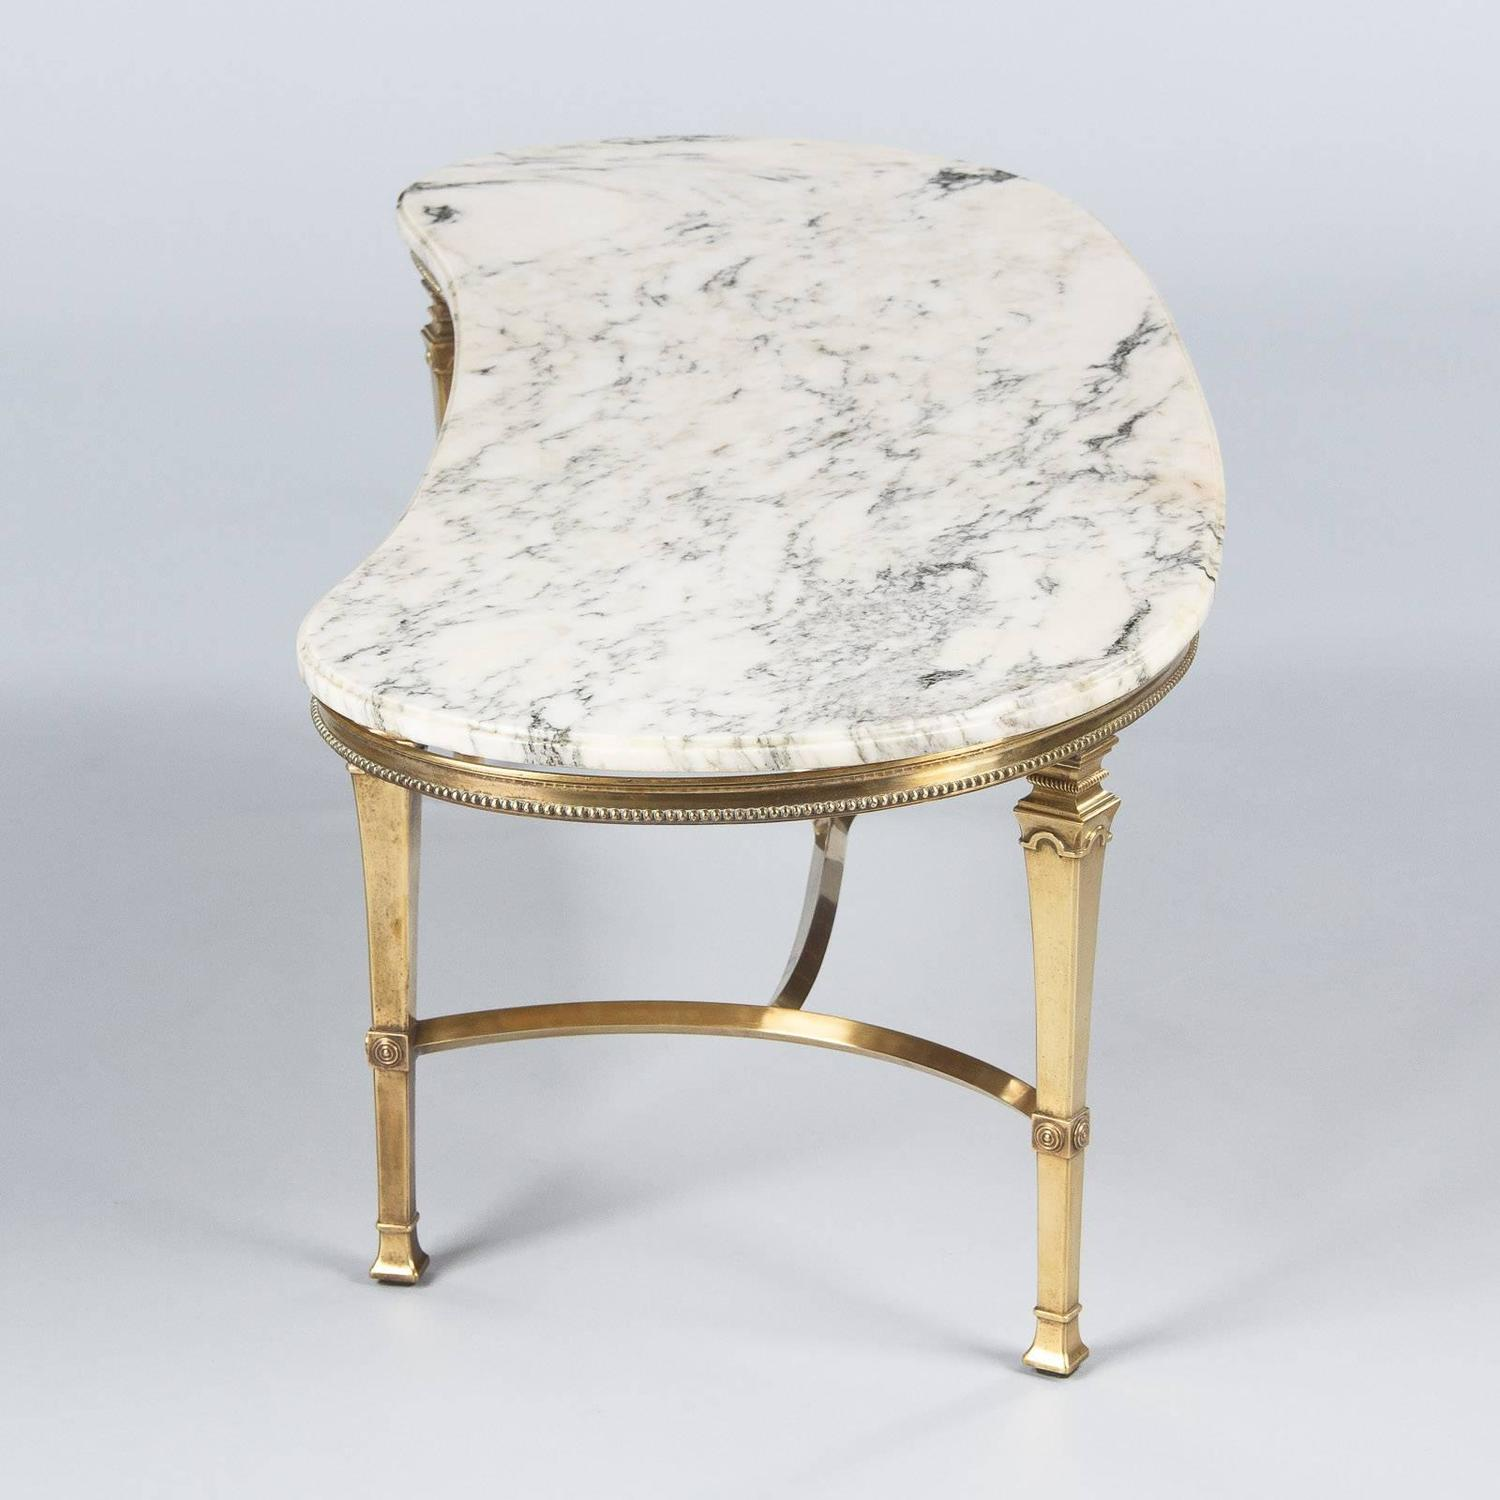 Mid Century Marble Top Kidney Shaped Brass Coffee Table For Sale At 1stdibs